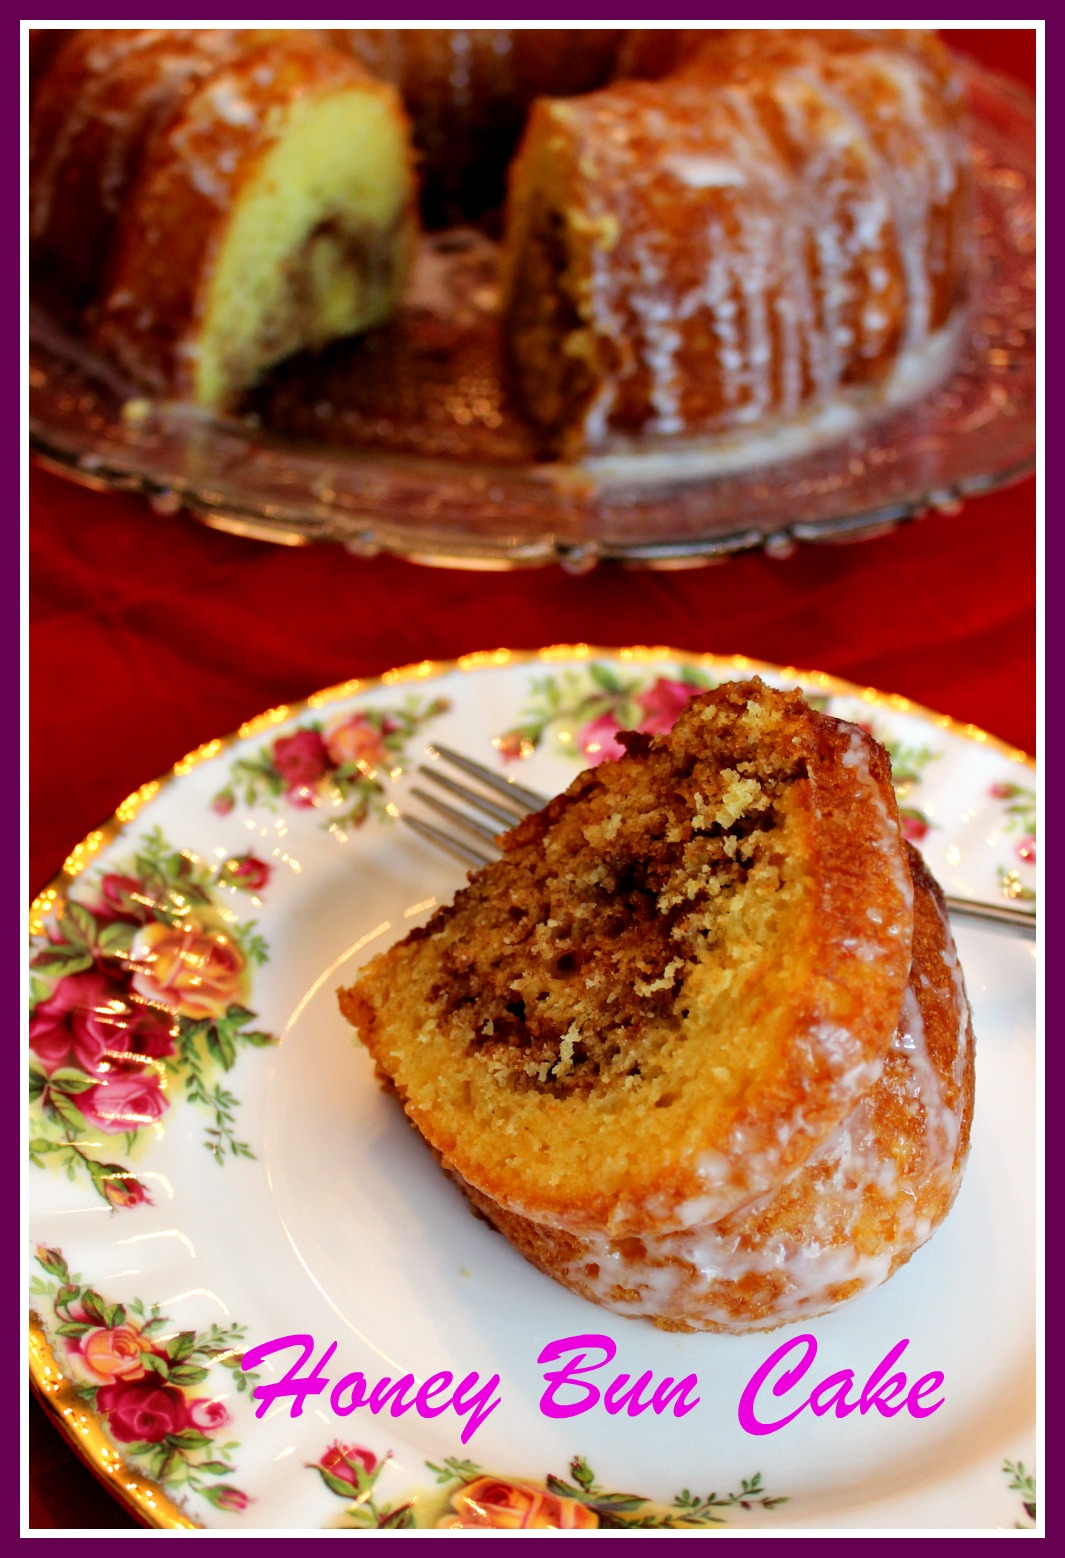 Honey Bun Cake Bundt Pan Recipe